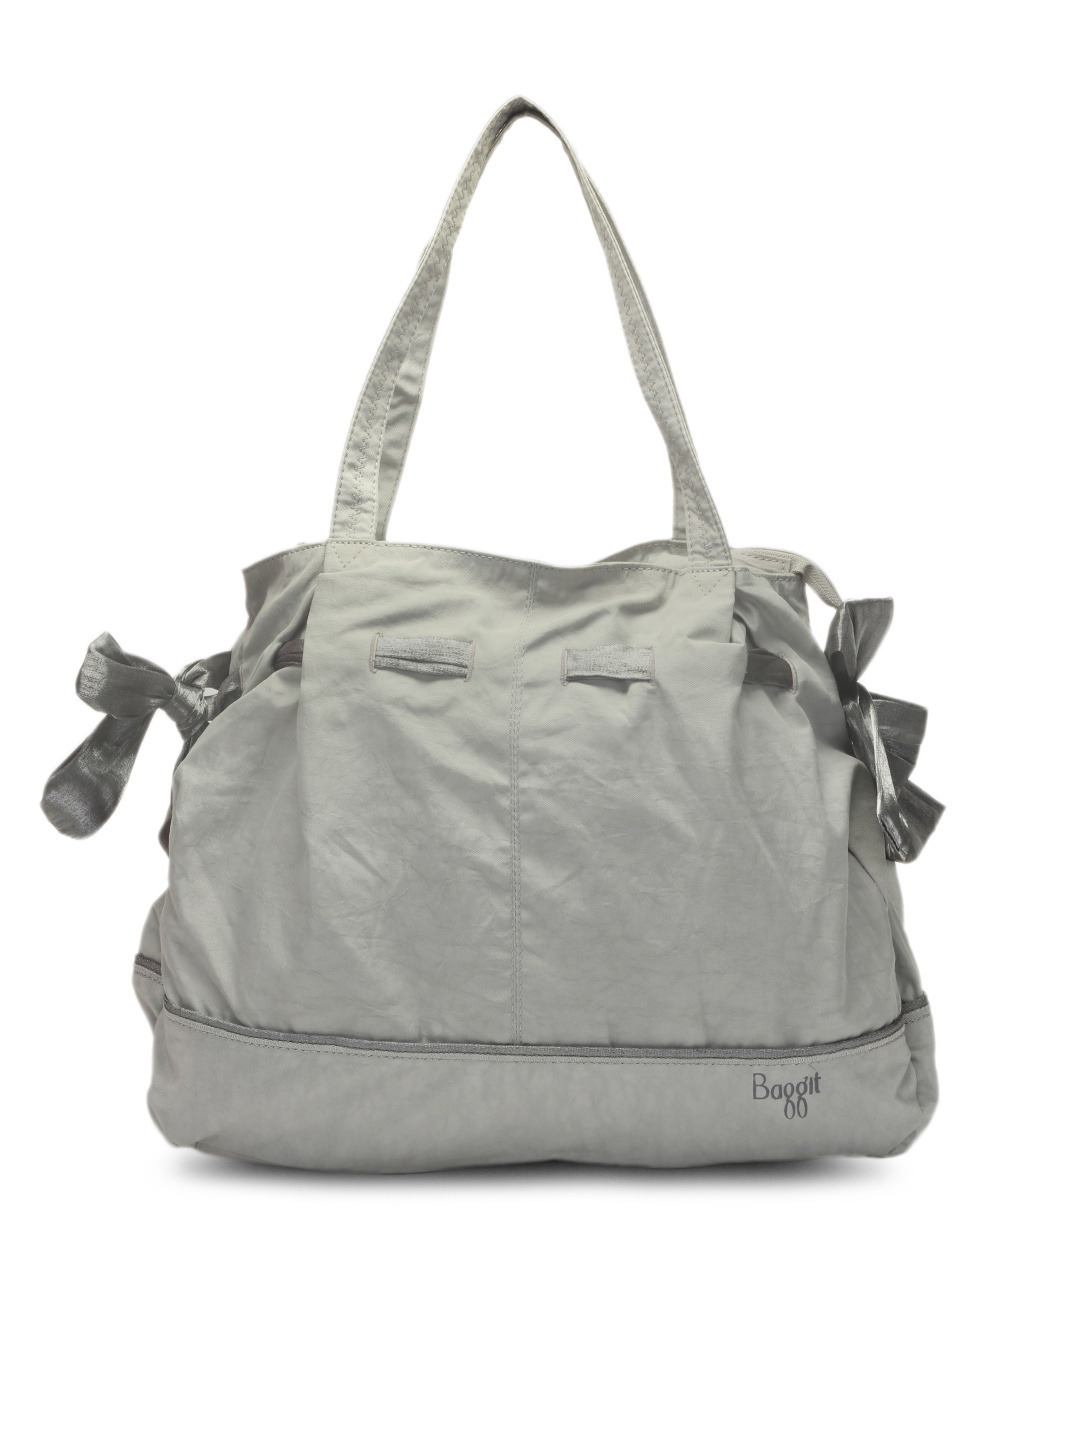 Baggit Women Grey Handbag